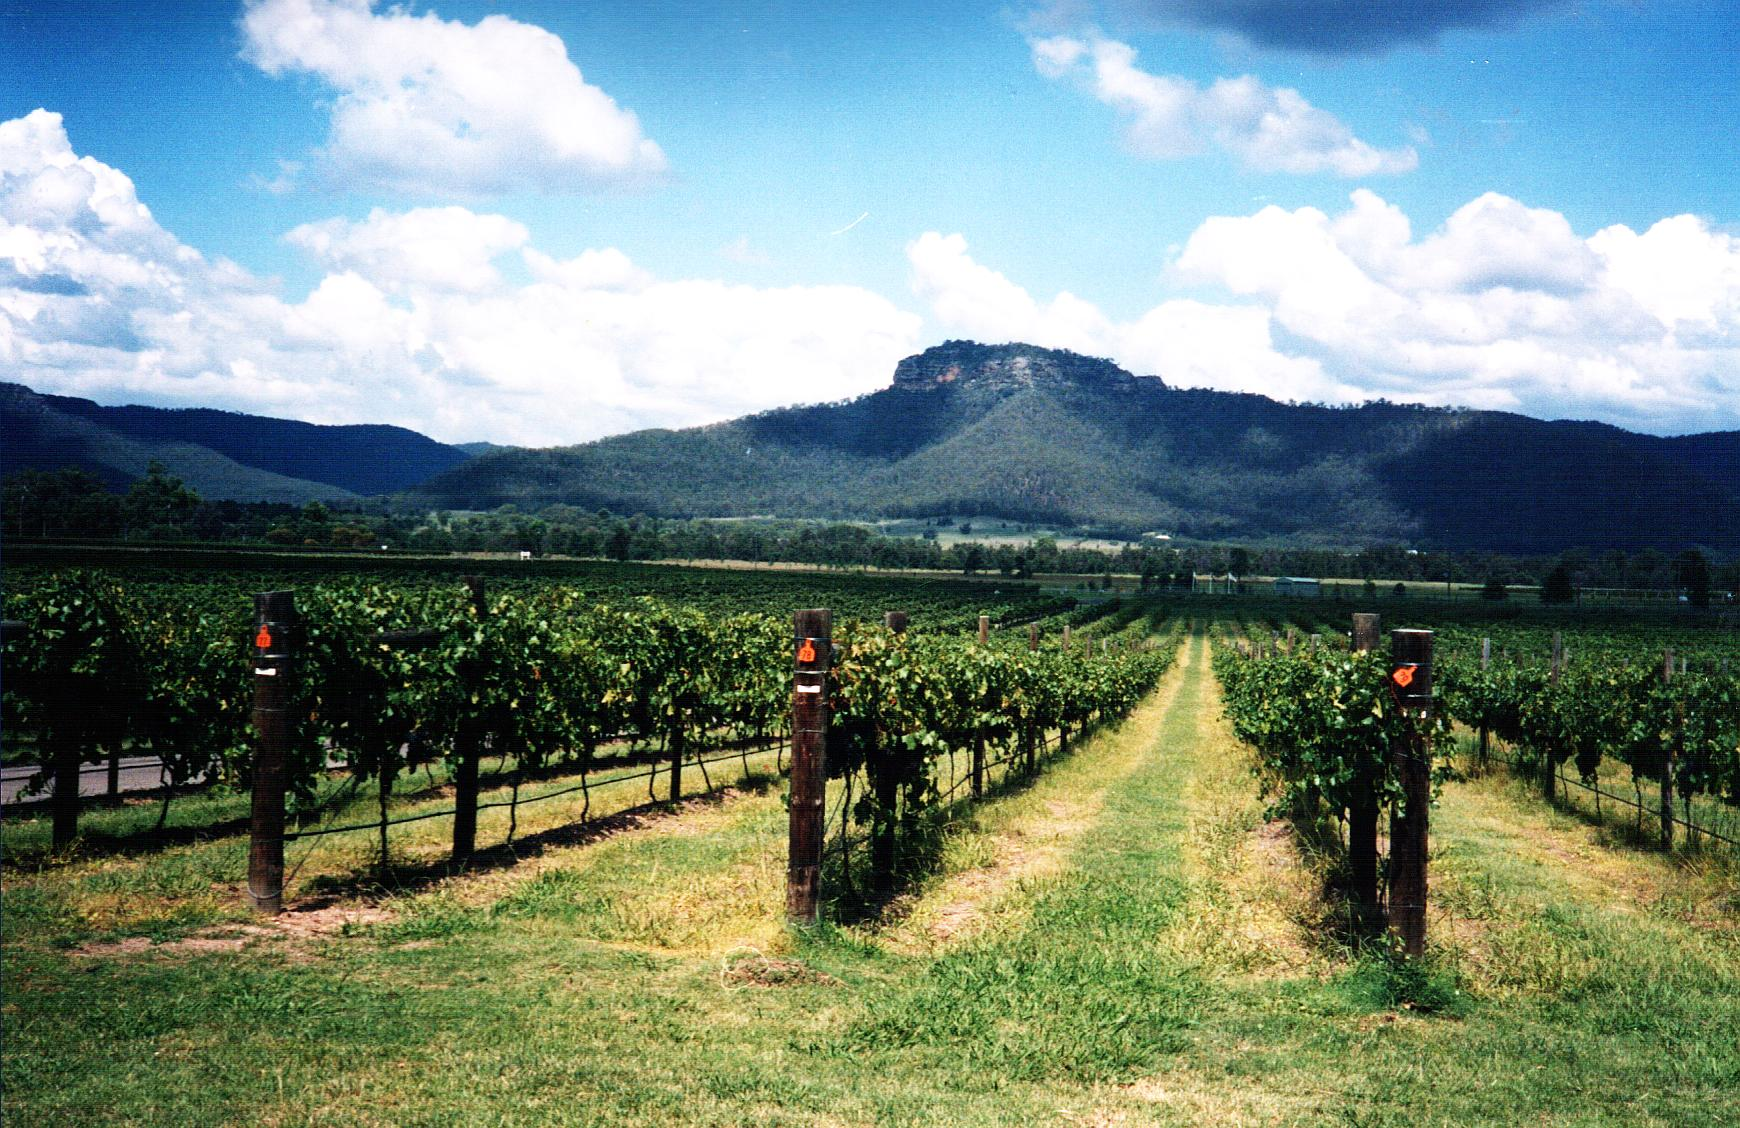 Hunter vineyard